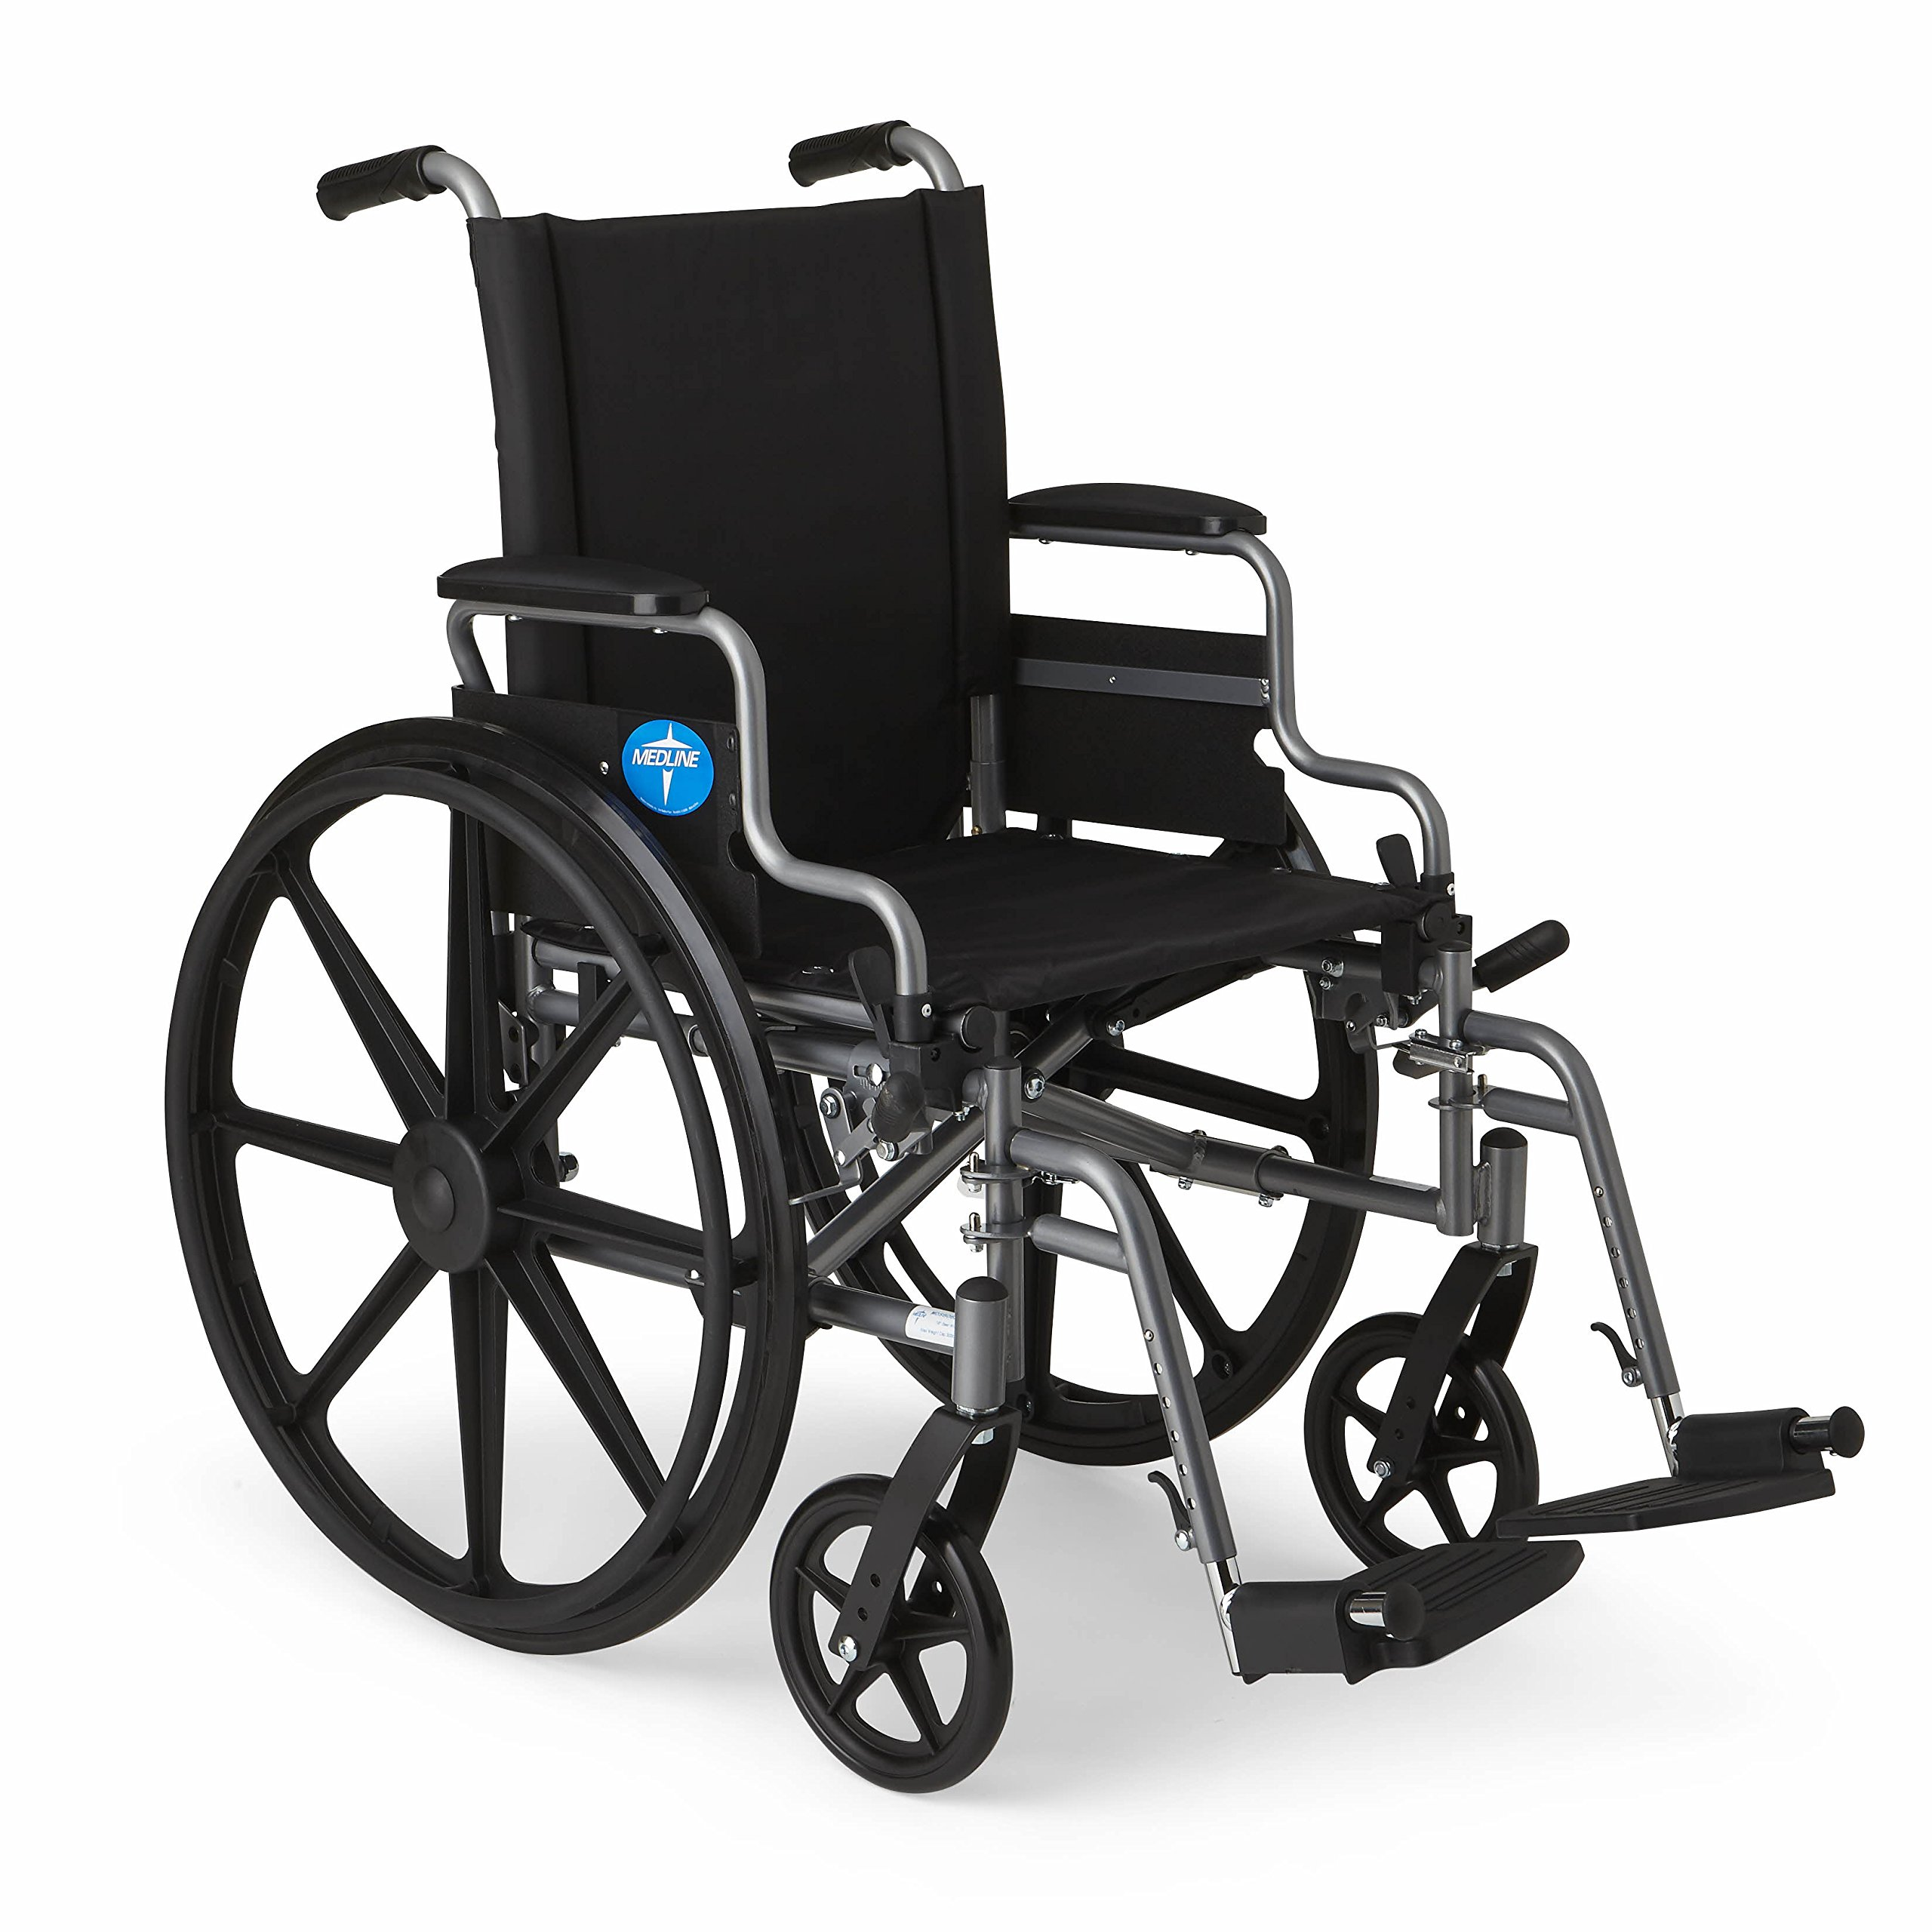 """Medline Lightweight and User-Friendly Wheelchair with Flip-Back Desk Arms and Swing-Away Leg Rests for Easy Transfers, Gray, 16"""" x 16'' Seat"""